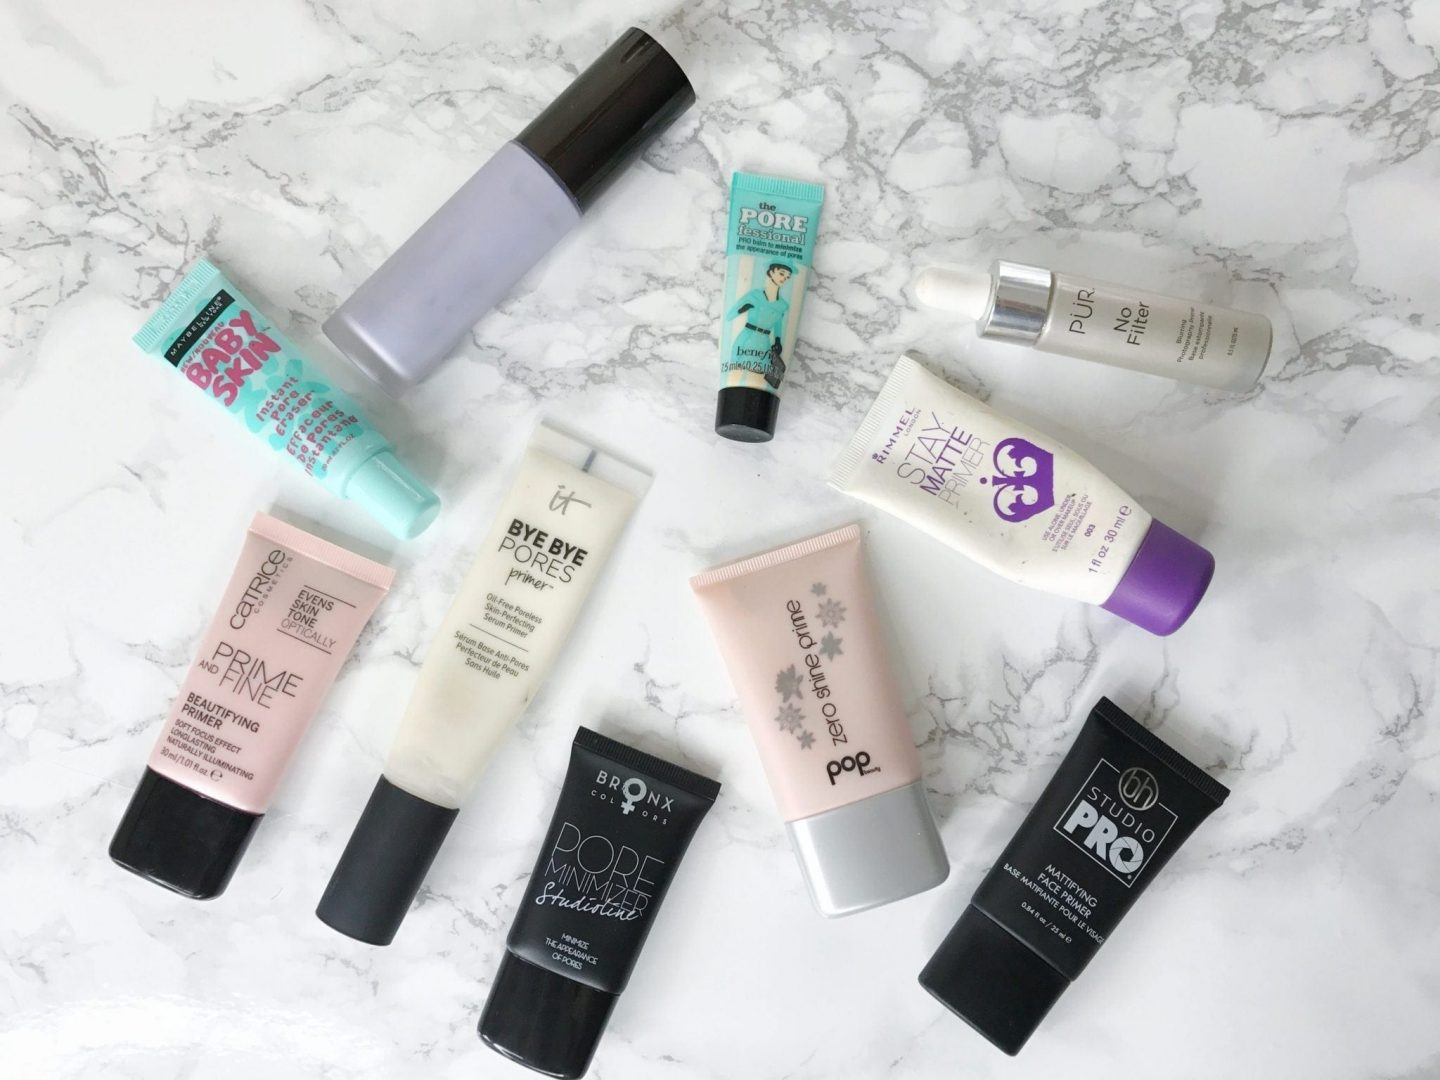 HOW TO: Choose A Primer Based On Skin Type